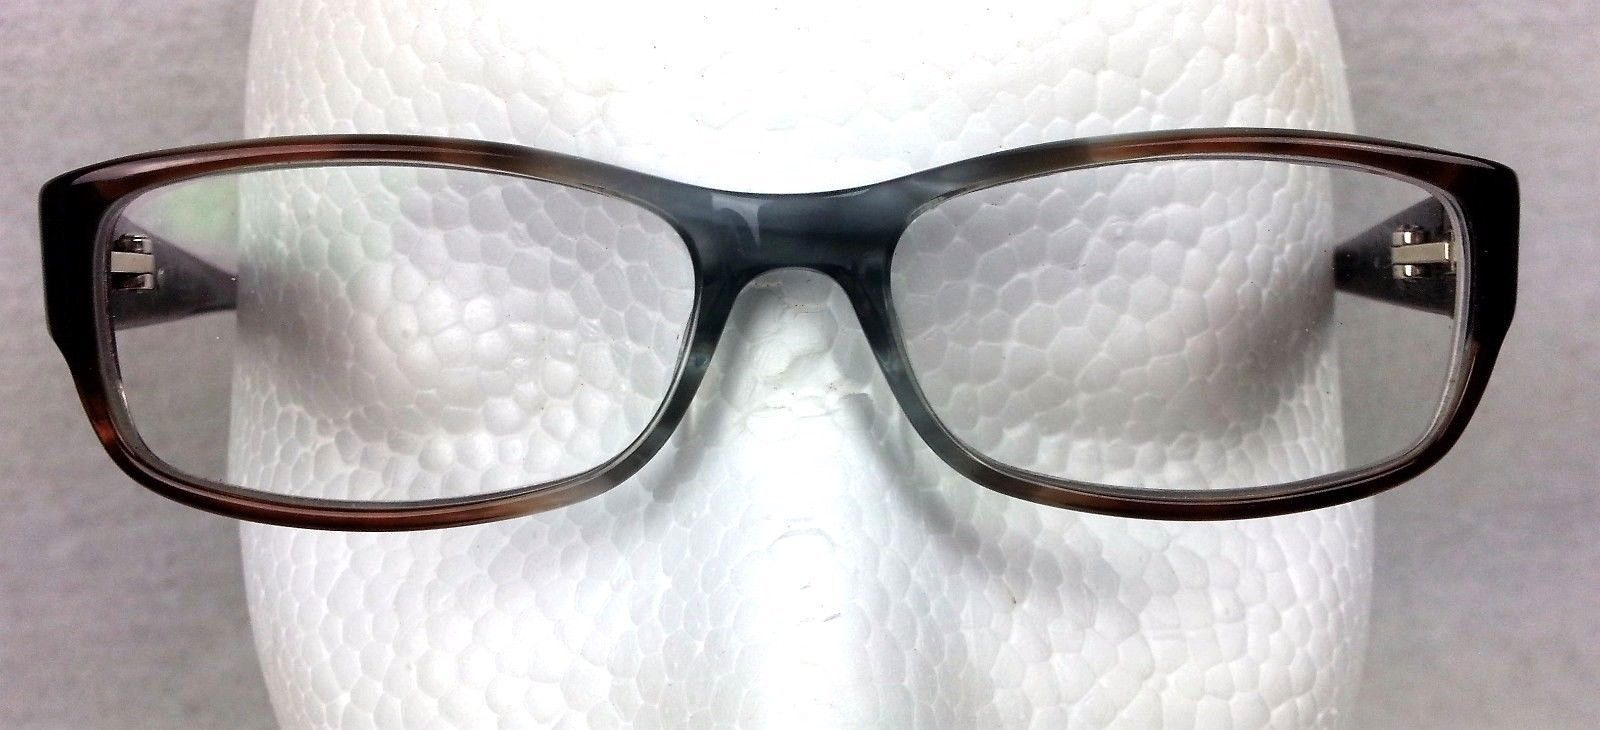 Nicole Miller Glasses Frames Womens Baxter C03 New York Brown Gray Prescription